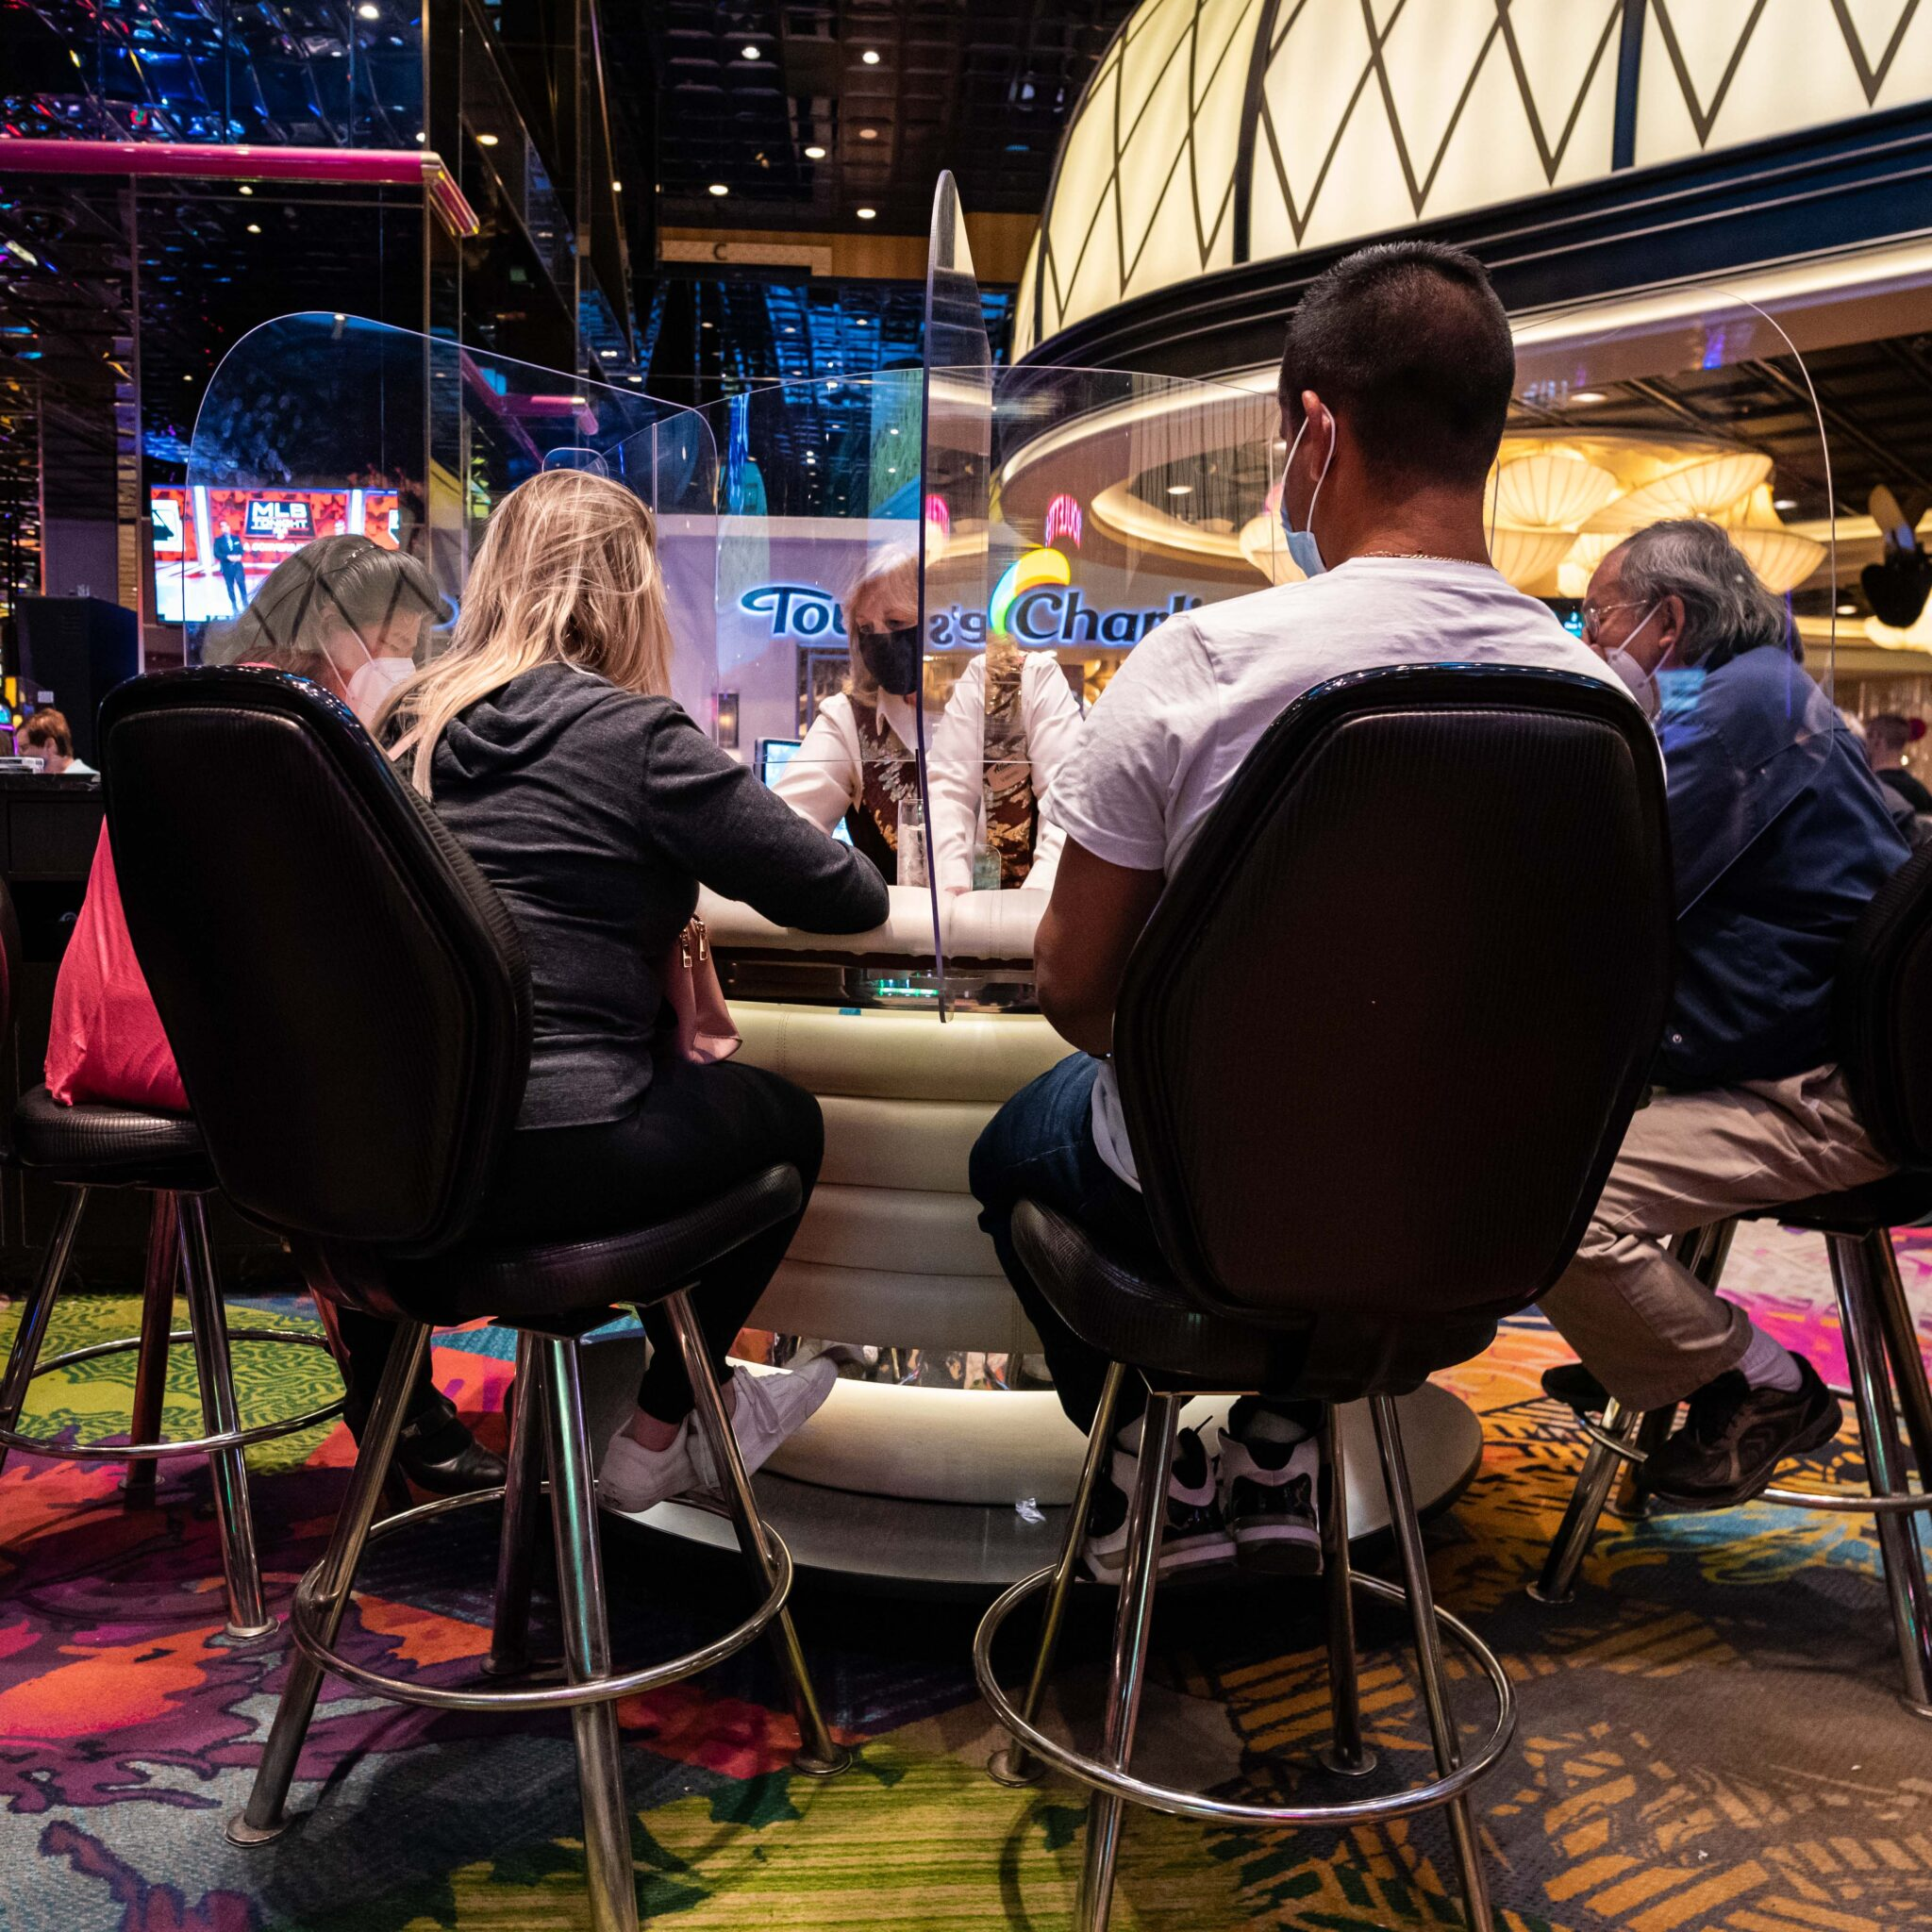 reno in transition, gambling, casino, masked, chair, dealer, cards, chris allan, covid transition time for Reno